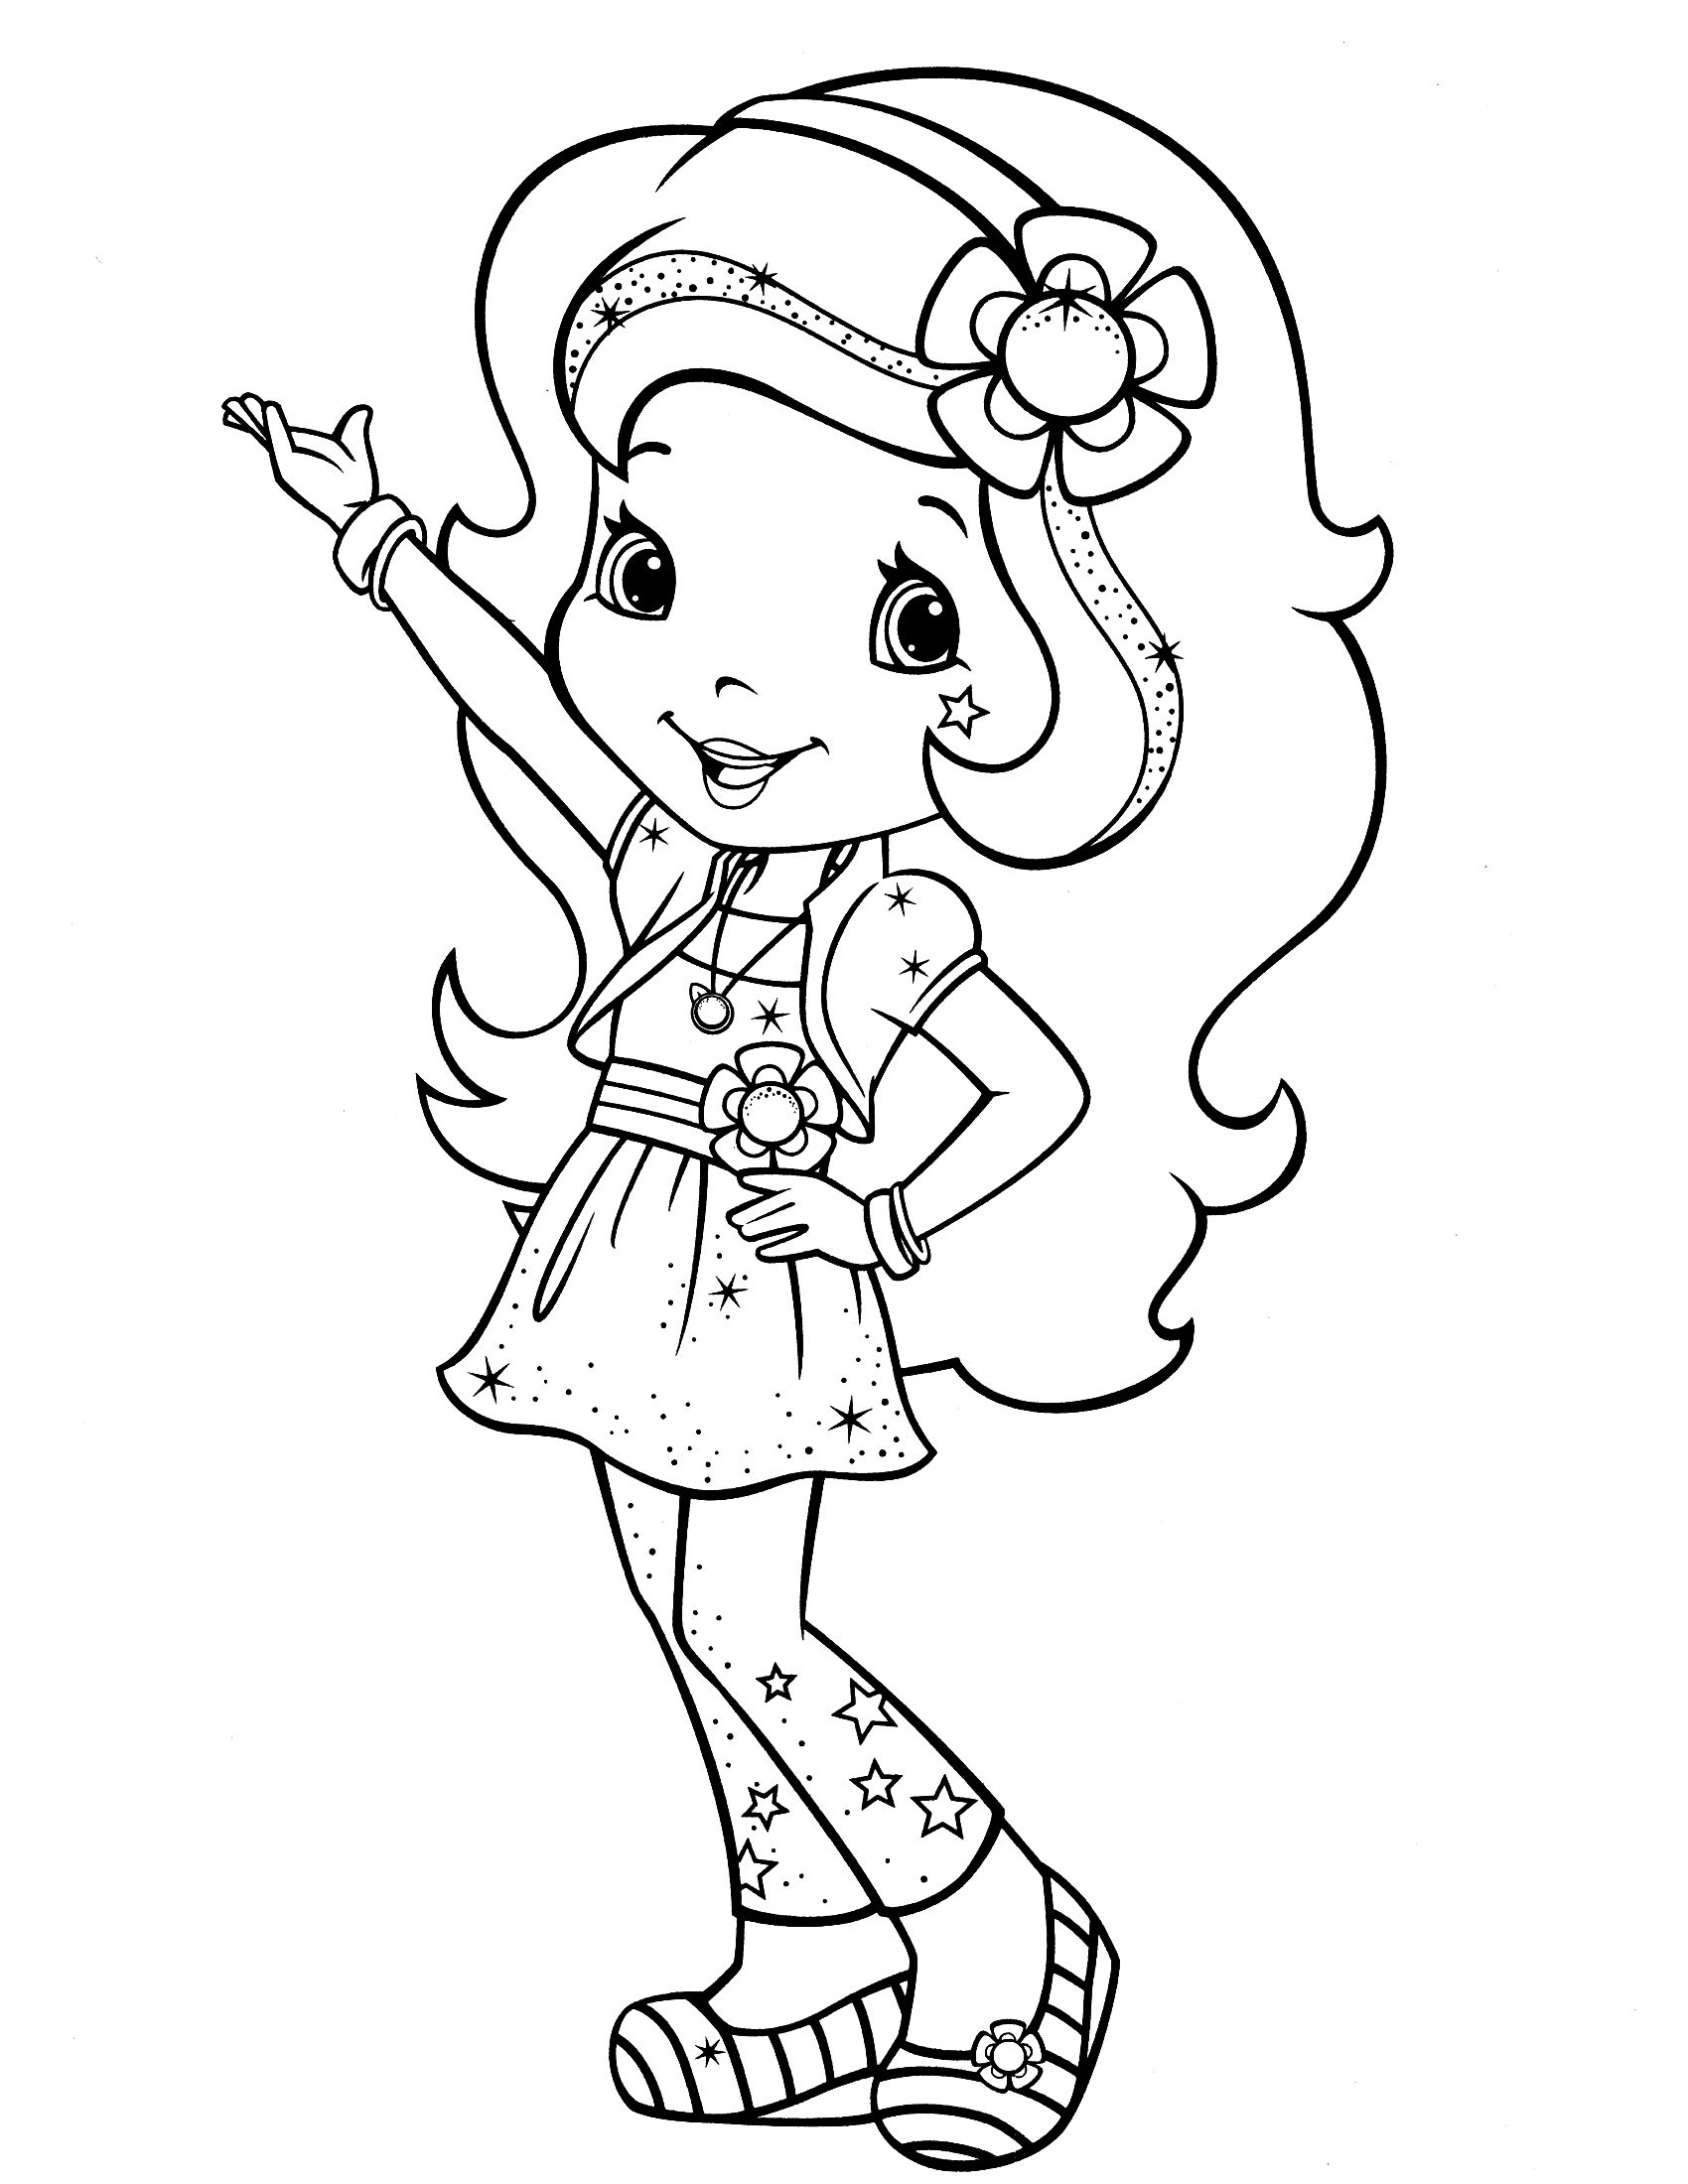 strawberry shortcake coloring pages free printable - download strawberry shortcake coloring pages patrones